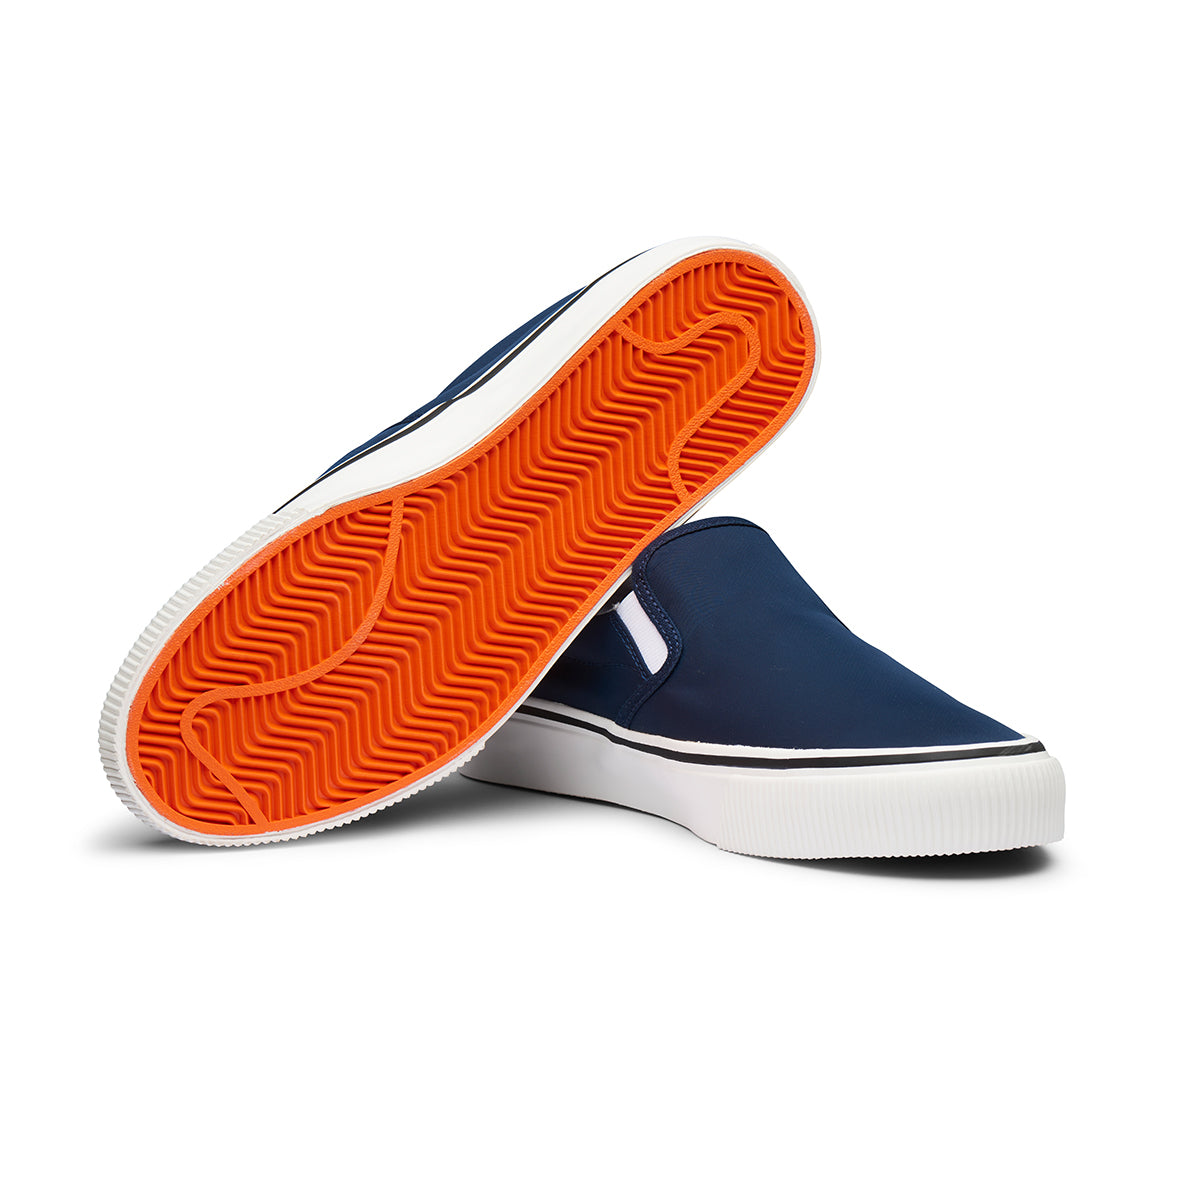 24Hr Slip On - background::white,variant::Navy